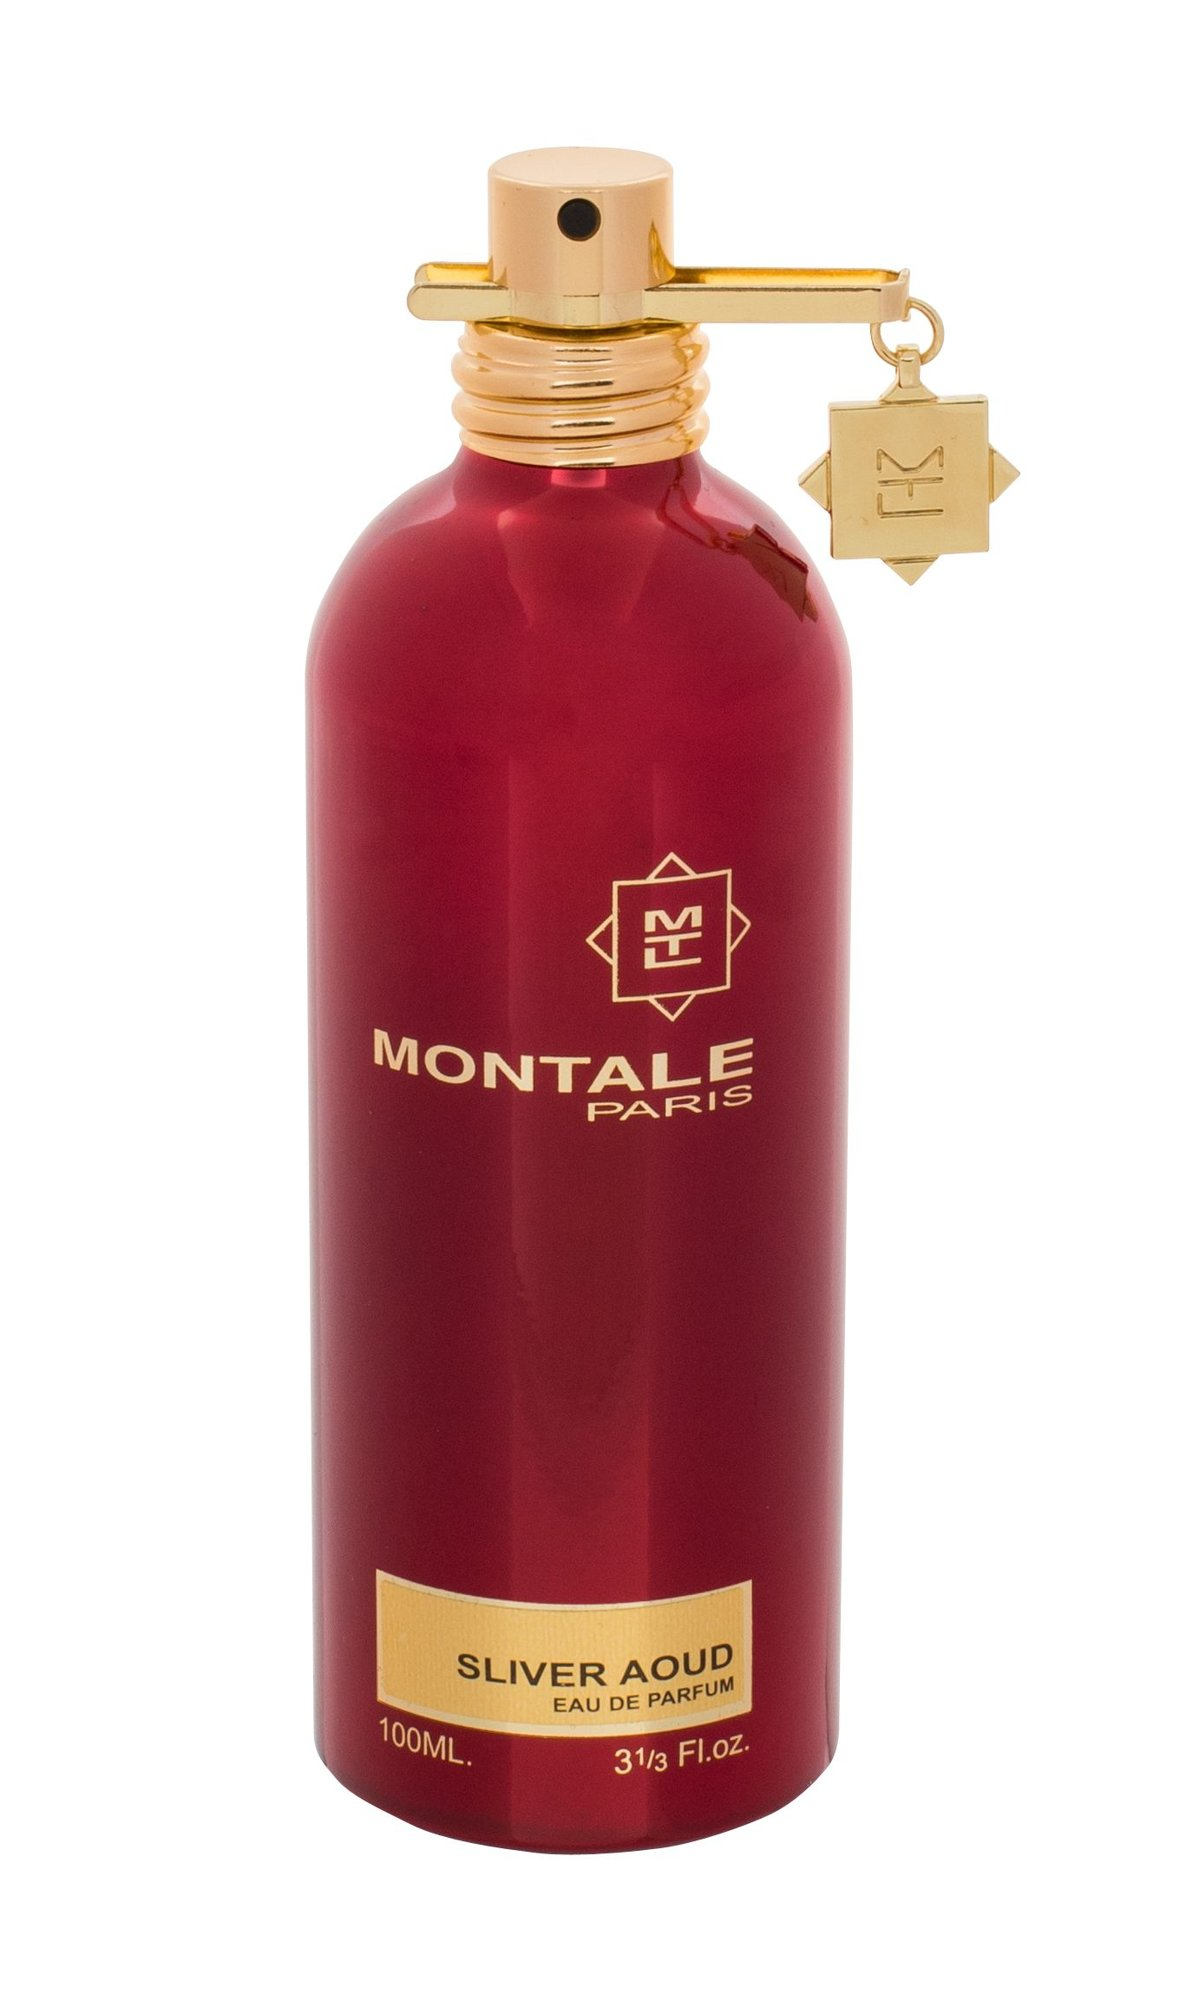 Montale Paris Sliver Aoud EDP 100ml